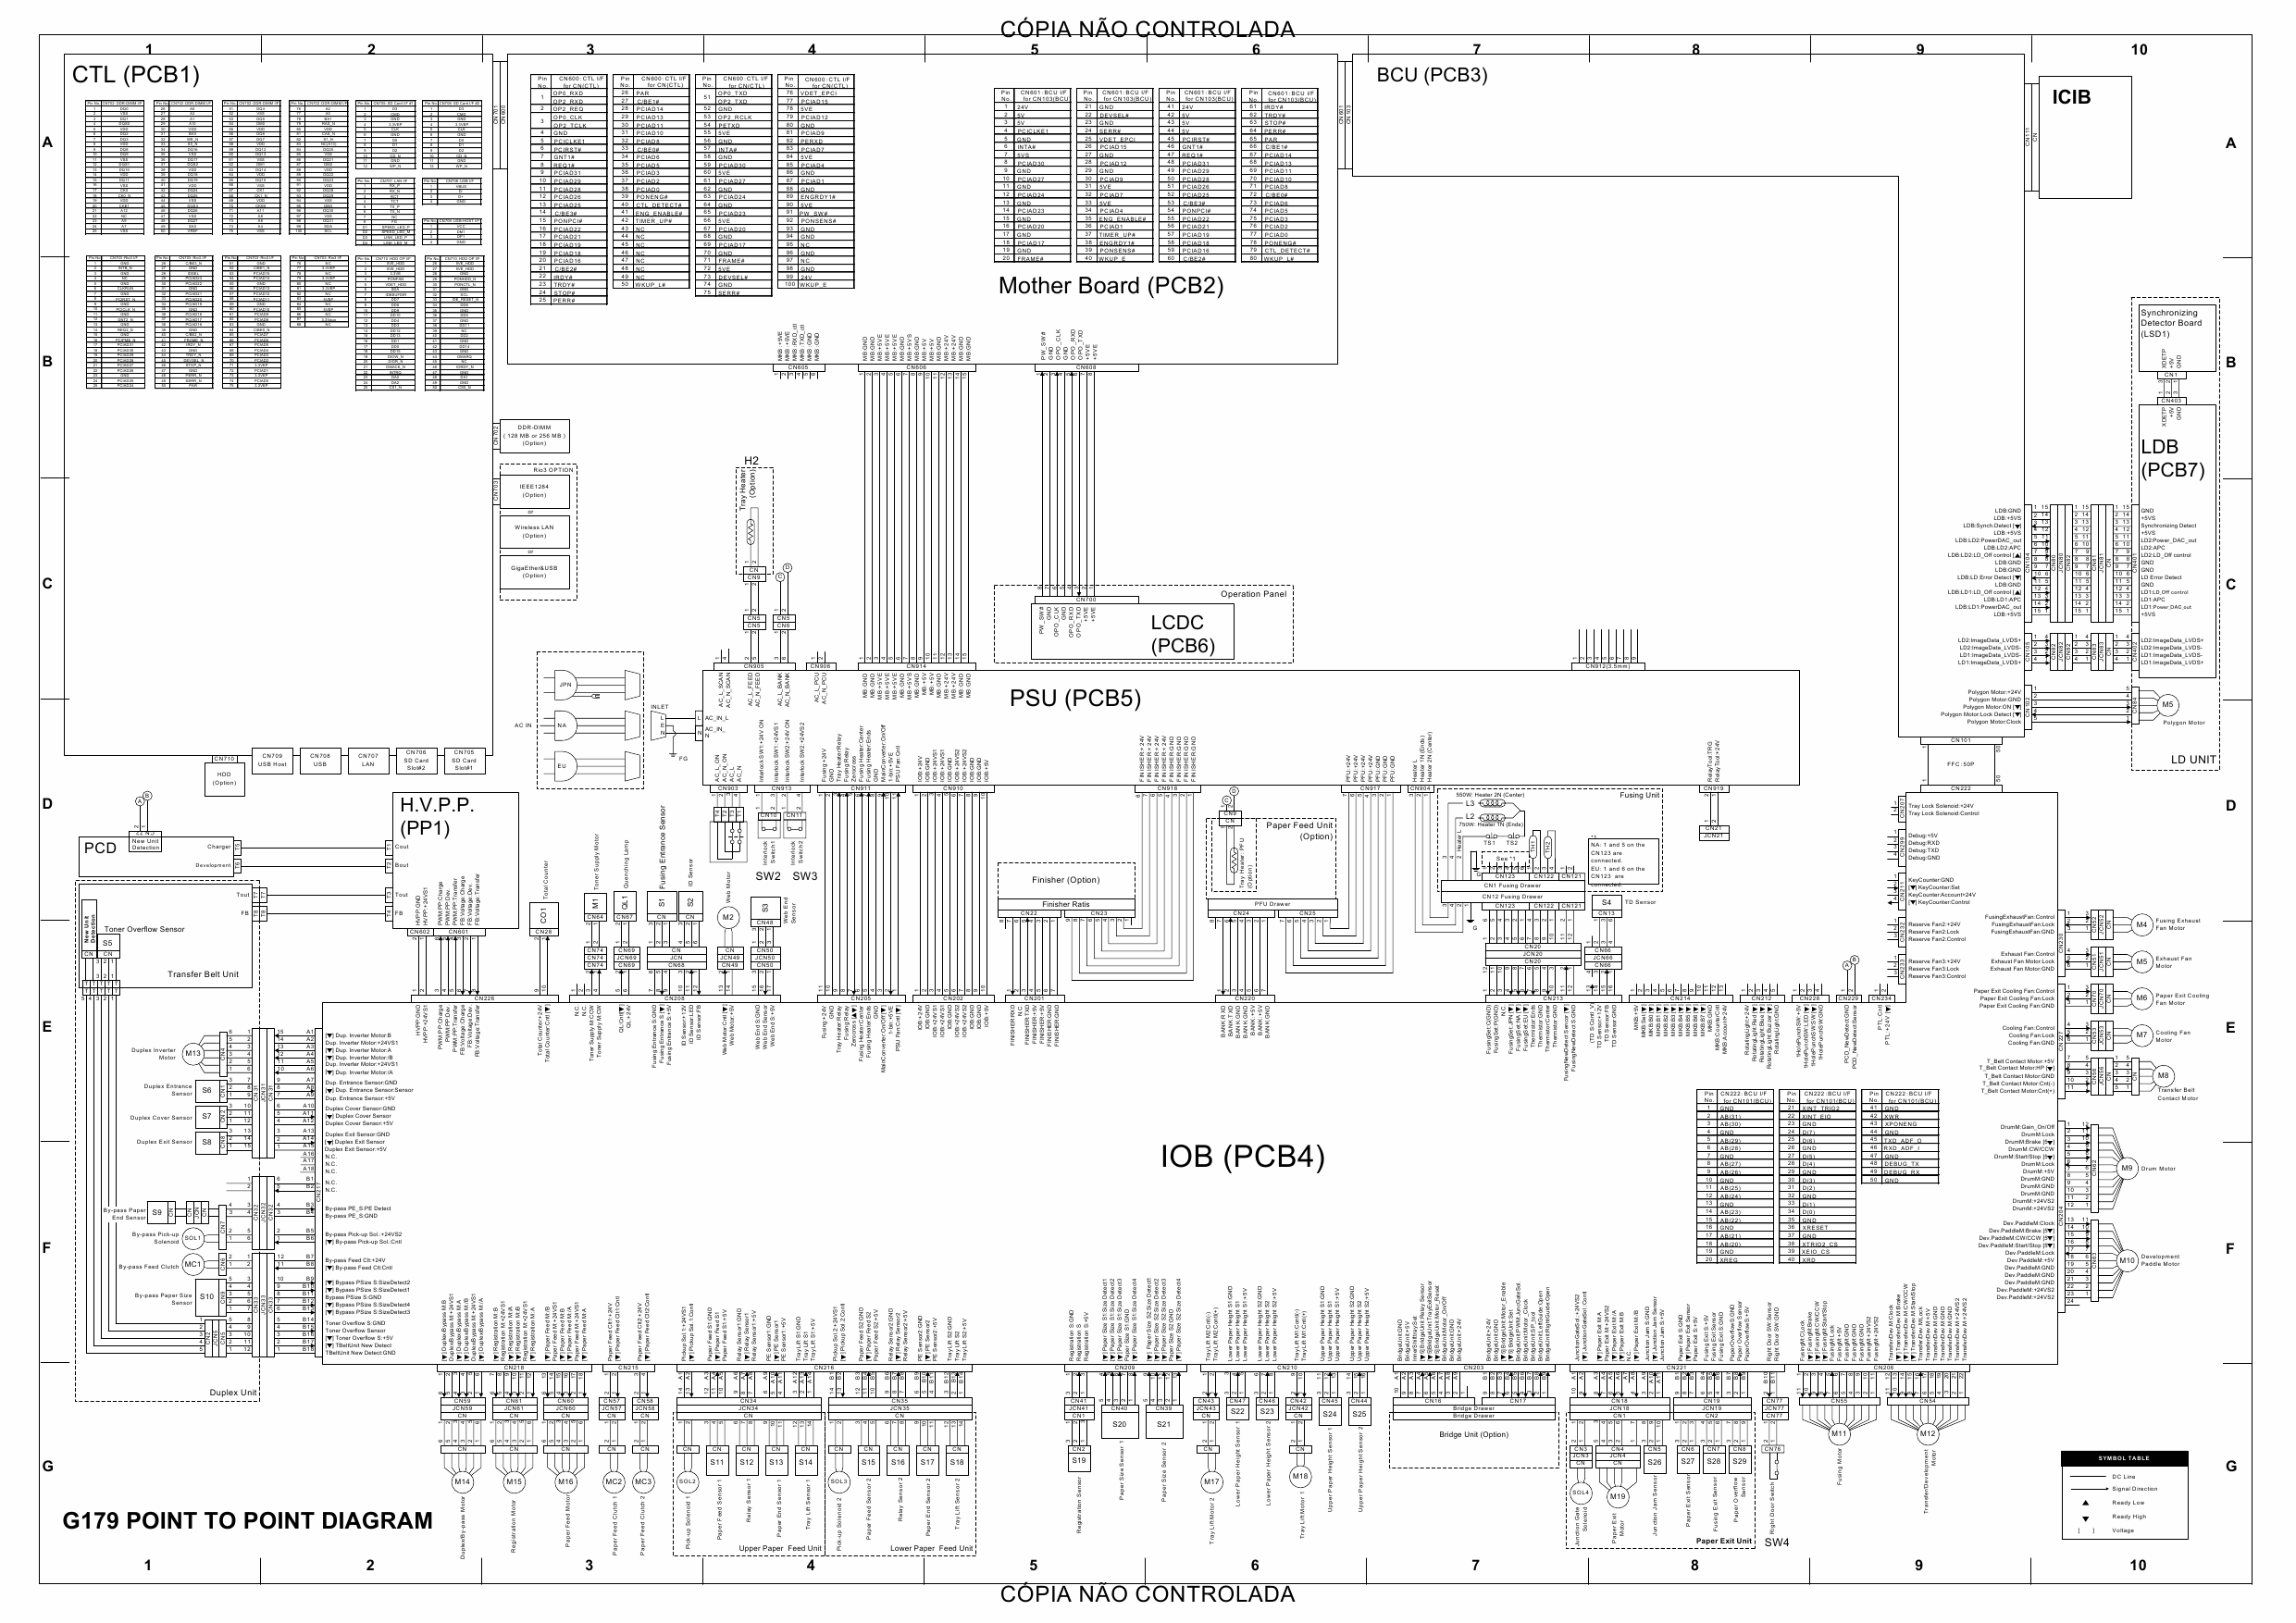 RICOH Aficio SP-8200DN G179 Circuit Diagram